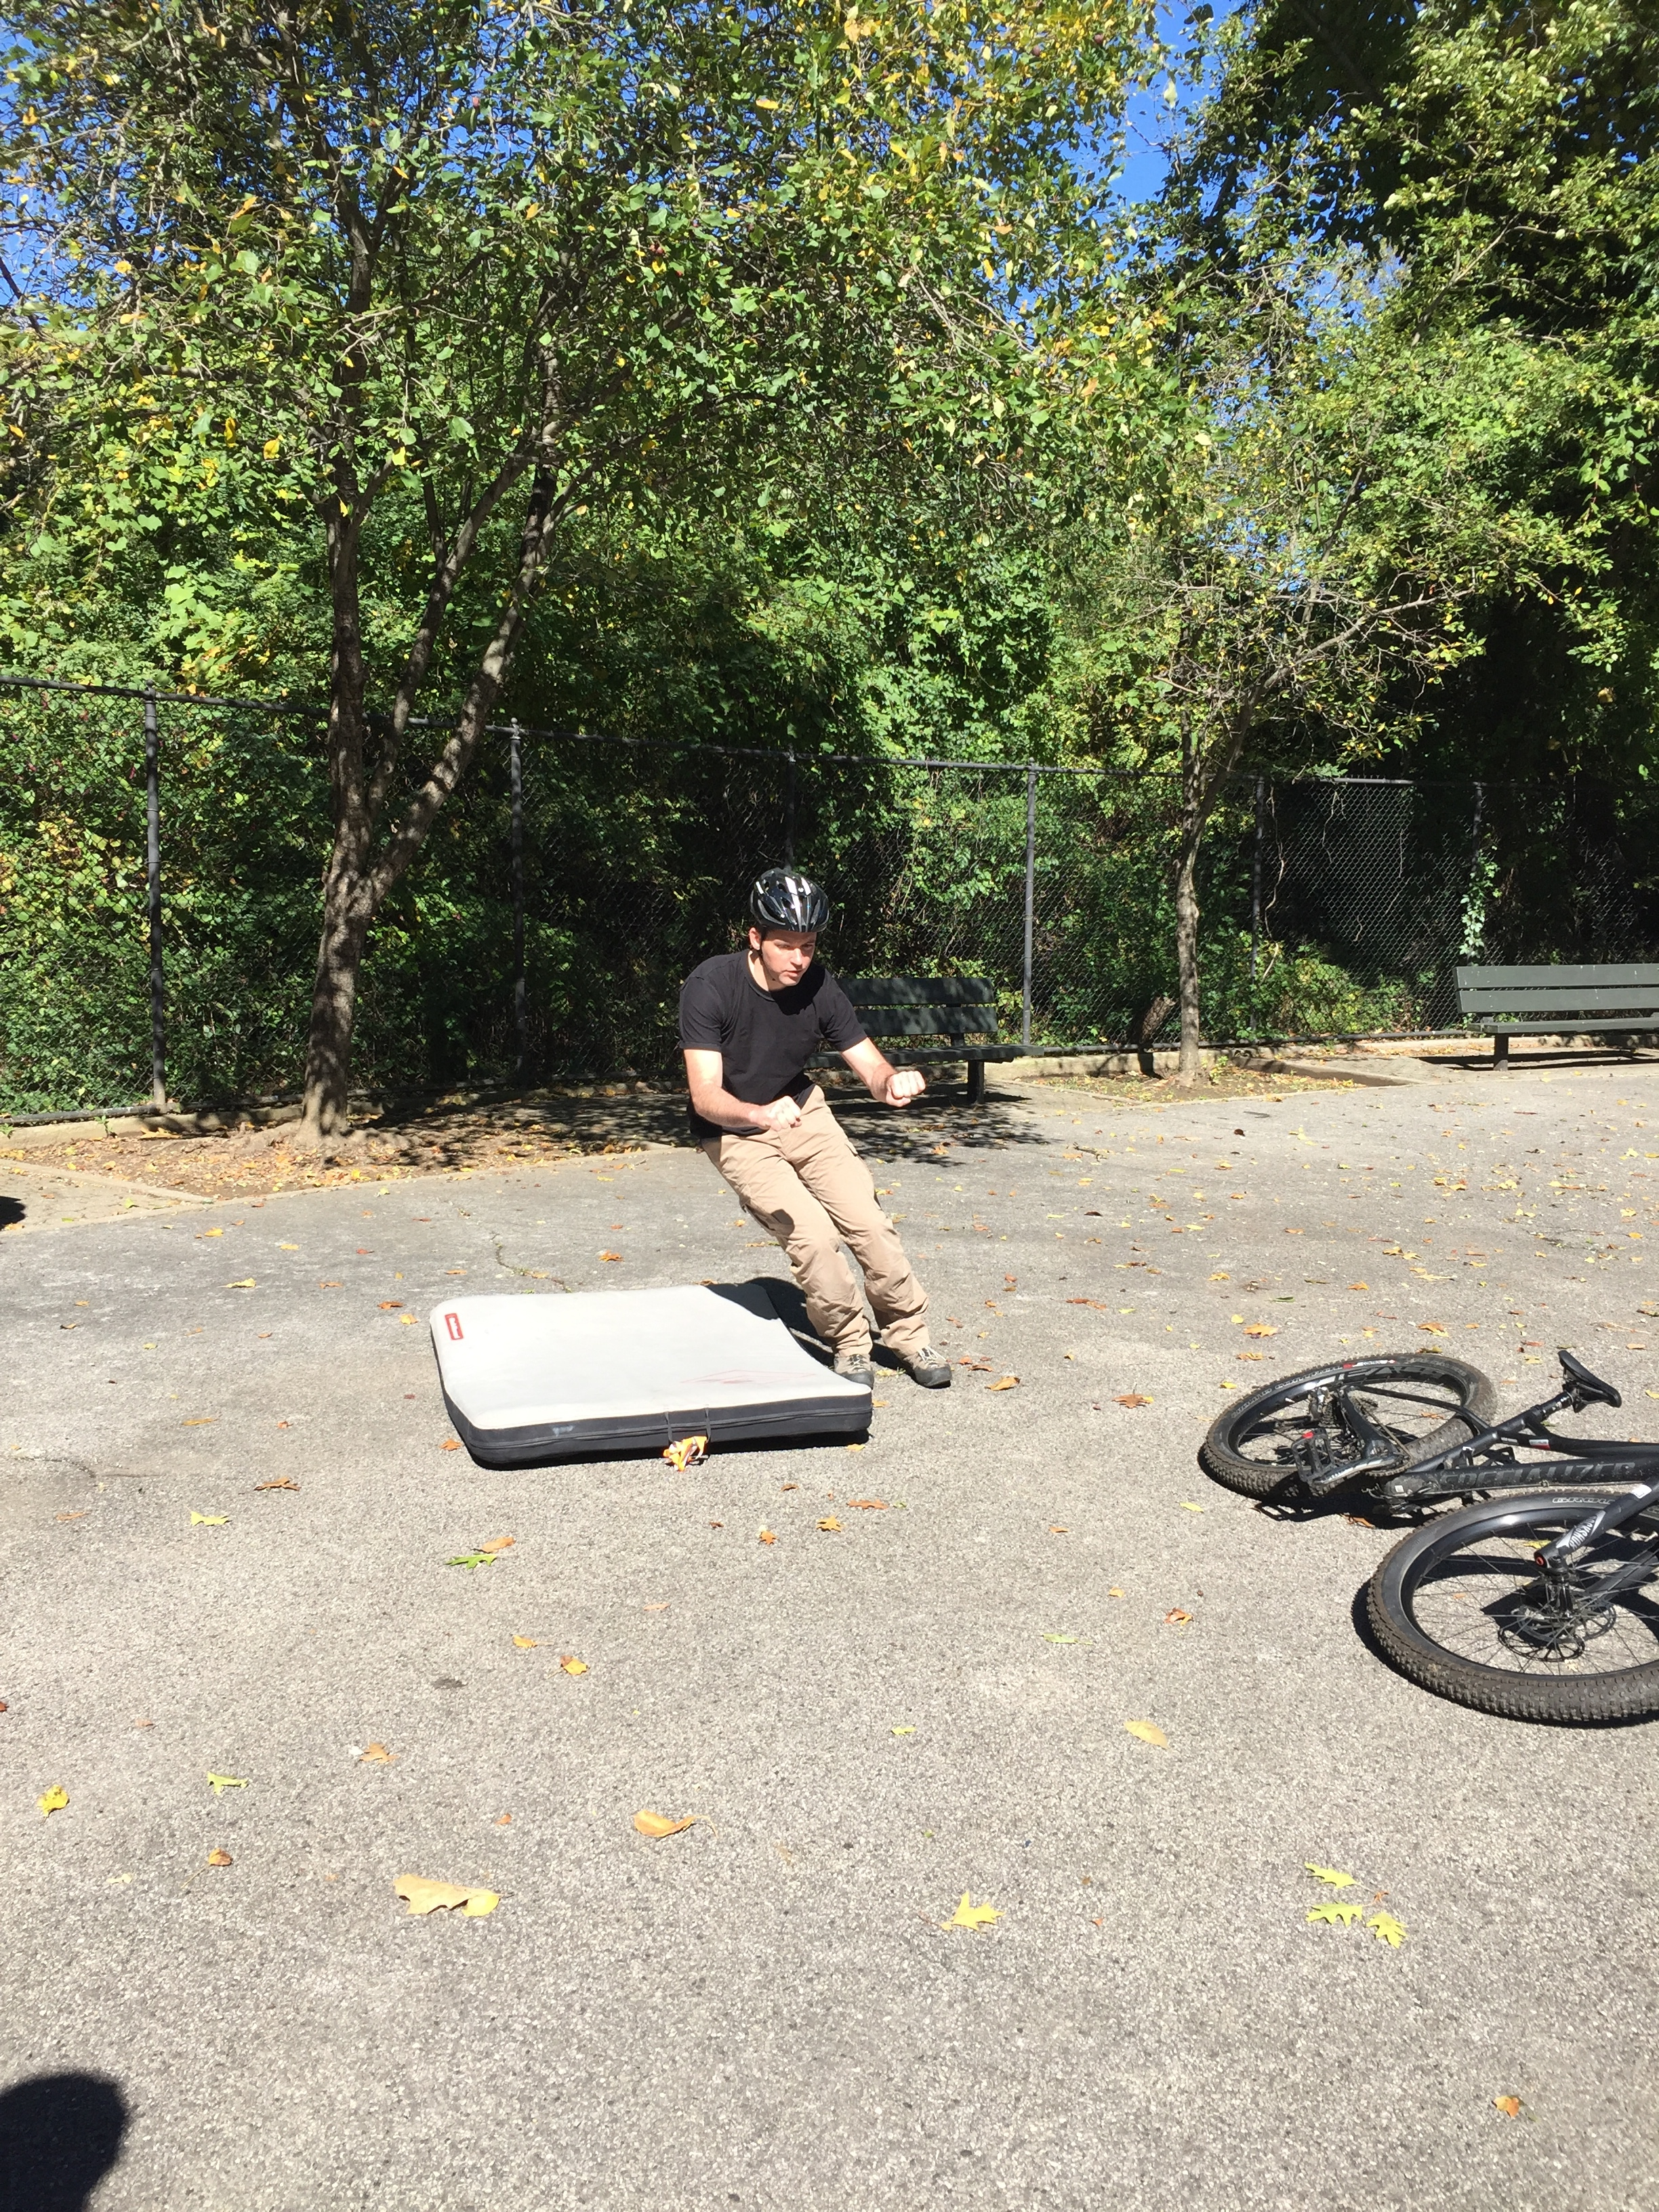 Instructor Gary shows off the side break fall